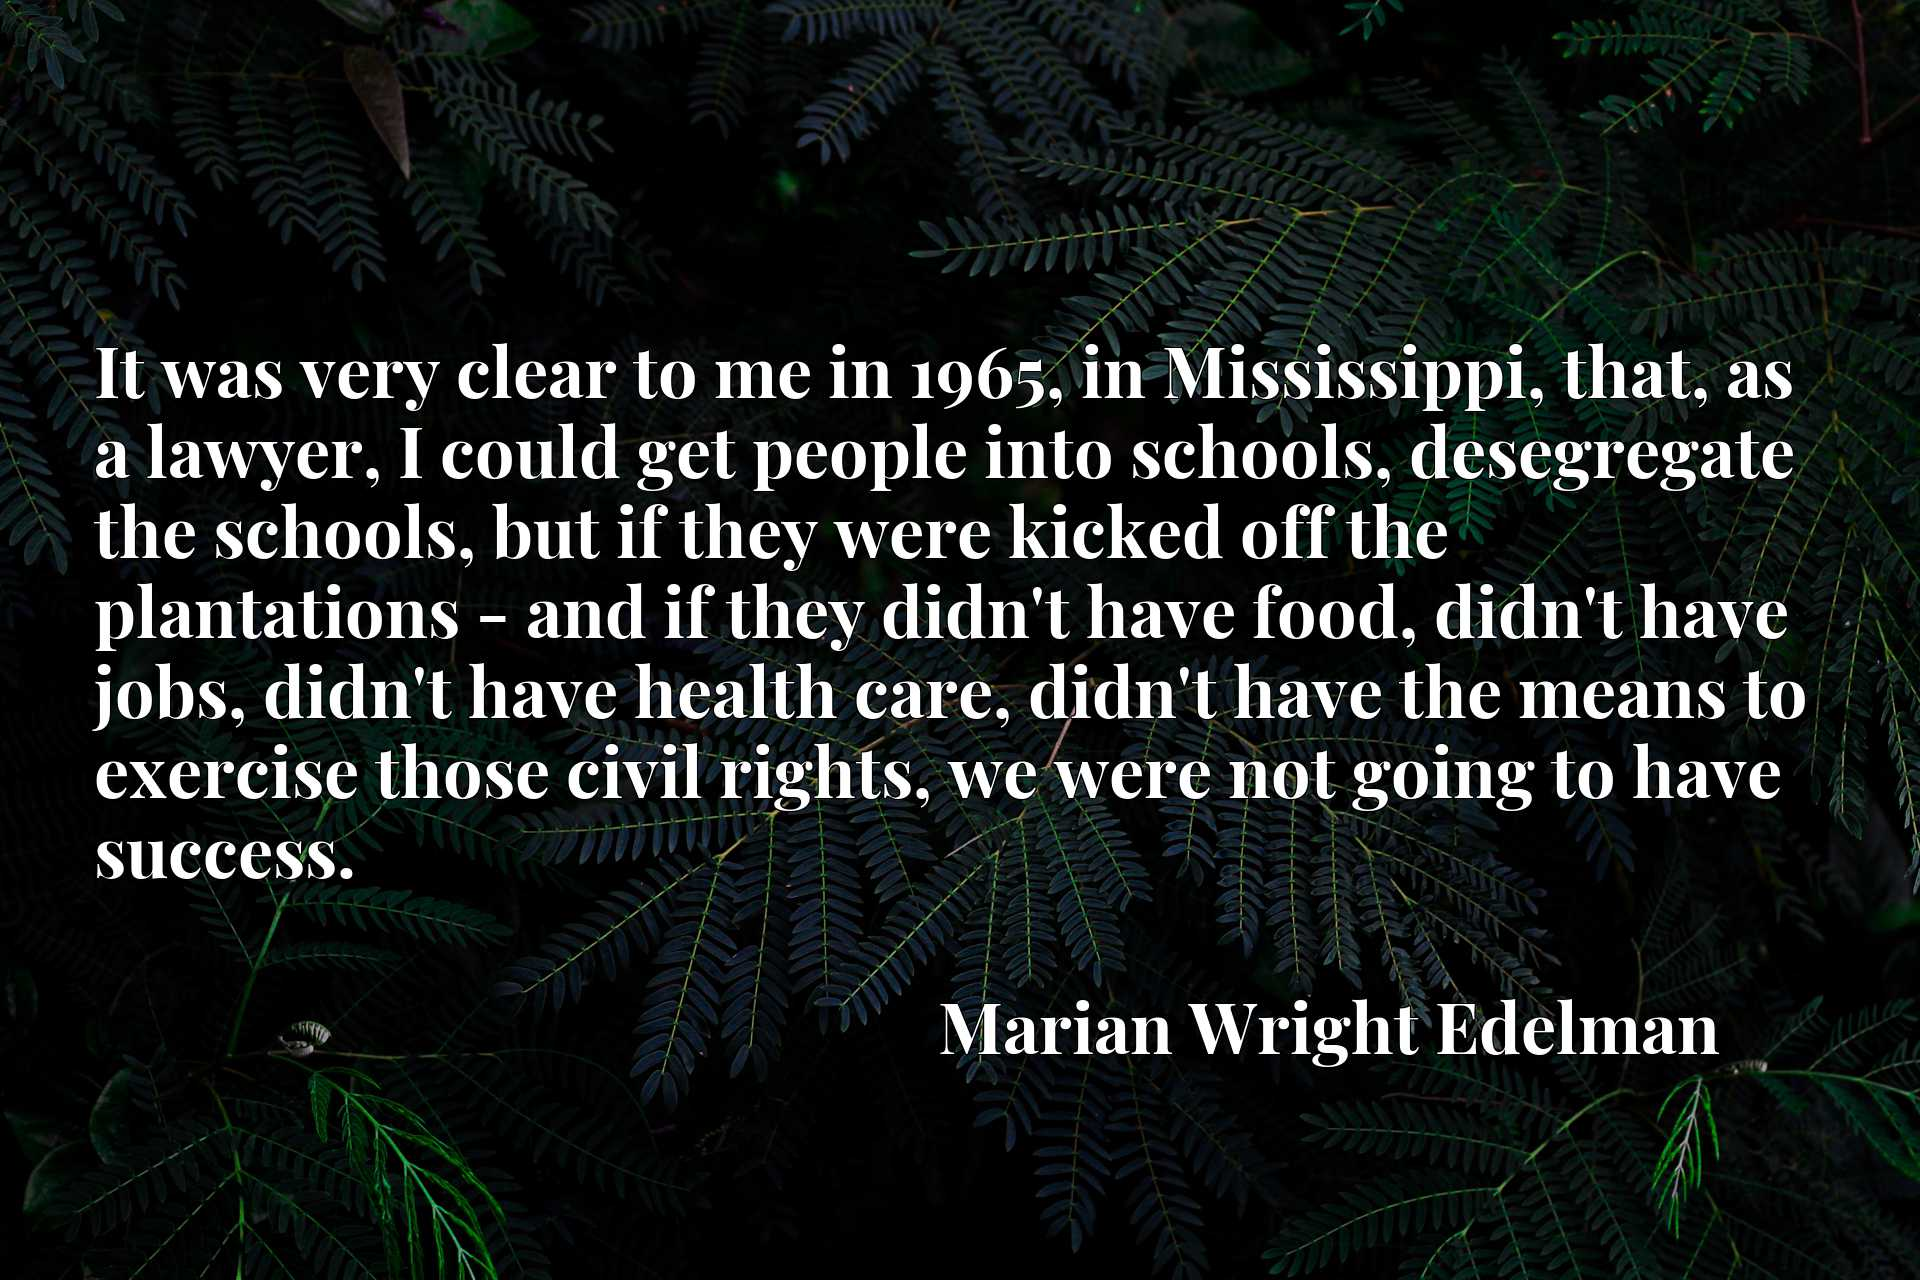 It was very clear to me in 1965, in Mississippi, that, as a lawyer, I could get people into schools, desegregate the schools, but if they were kicked off the plantations - and if they didn't have food, didn't have jobs, didn't have health care, didn't have the means to exercise those civil rights, we were not going to have success.